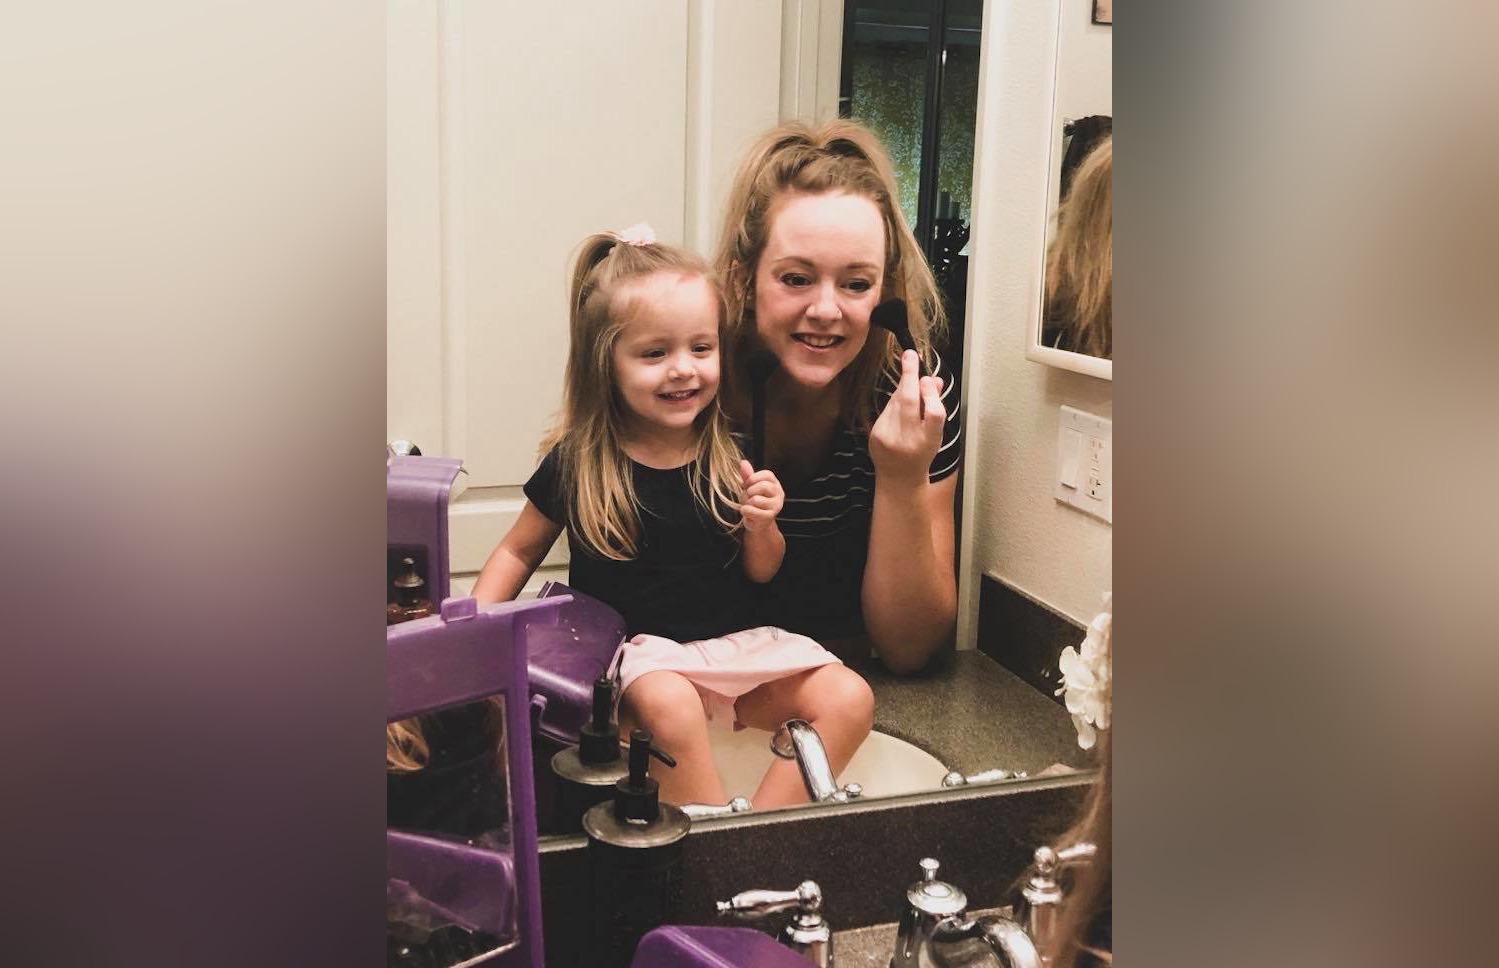 Mother and daughter putting on makeup in bathroom mirror